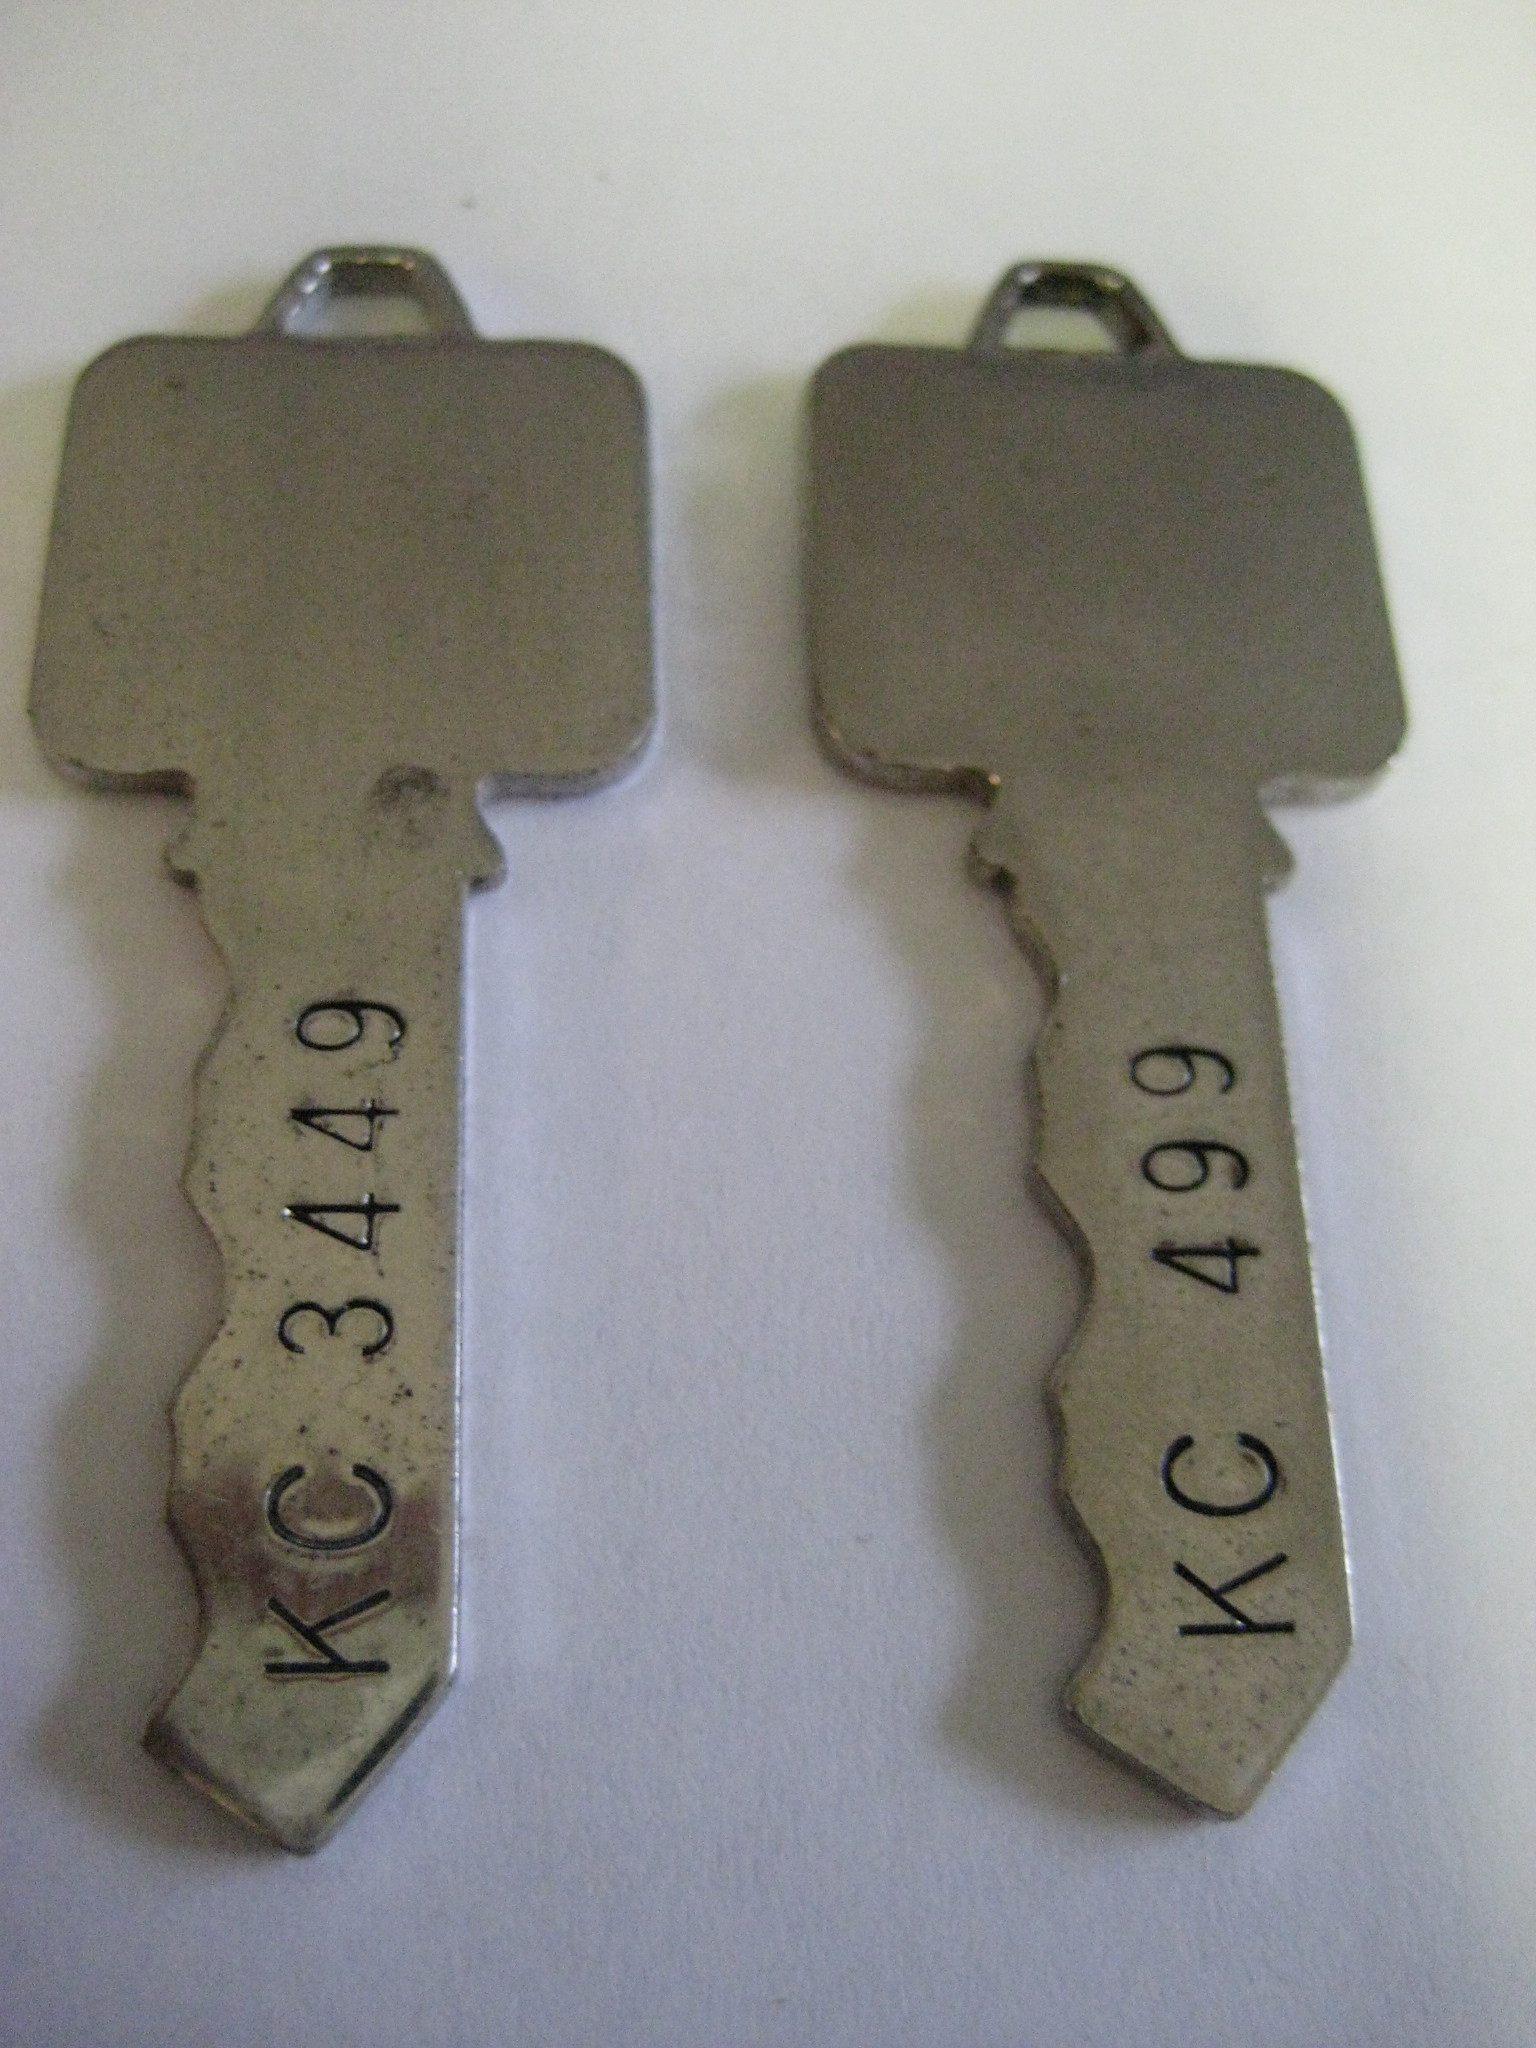 Kansas City Playboy Club Keys